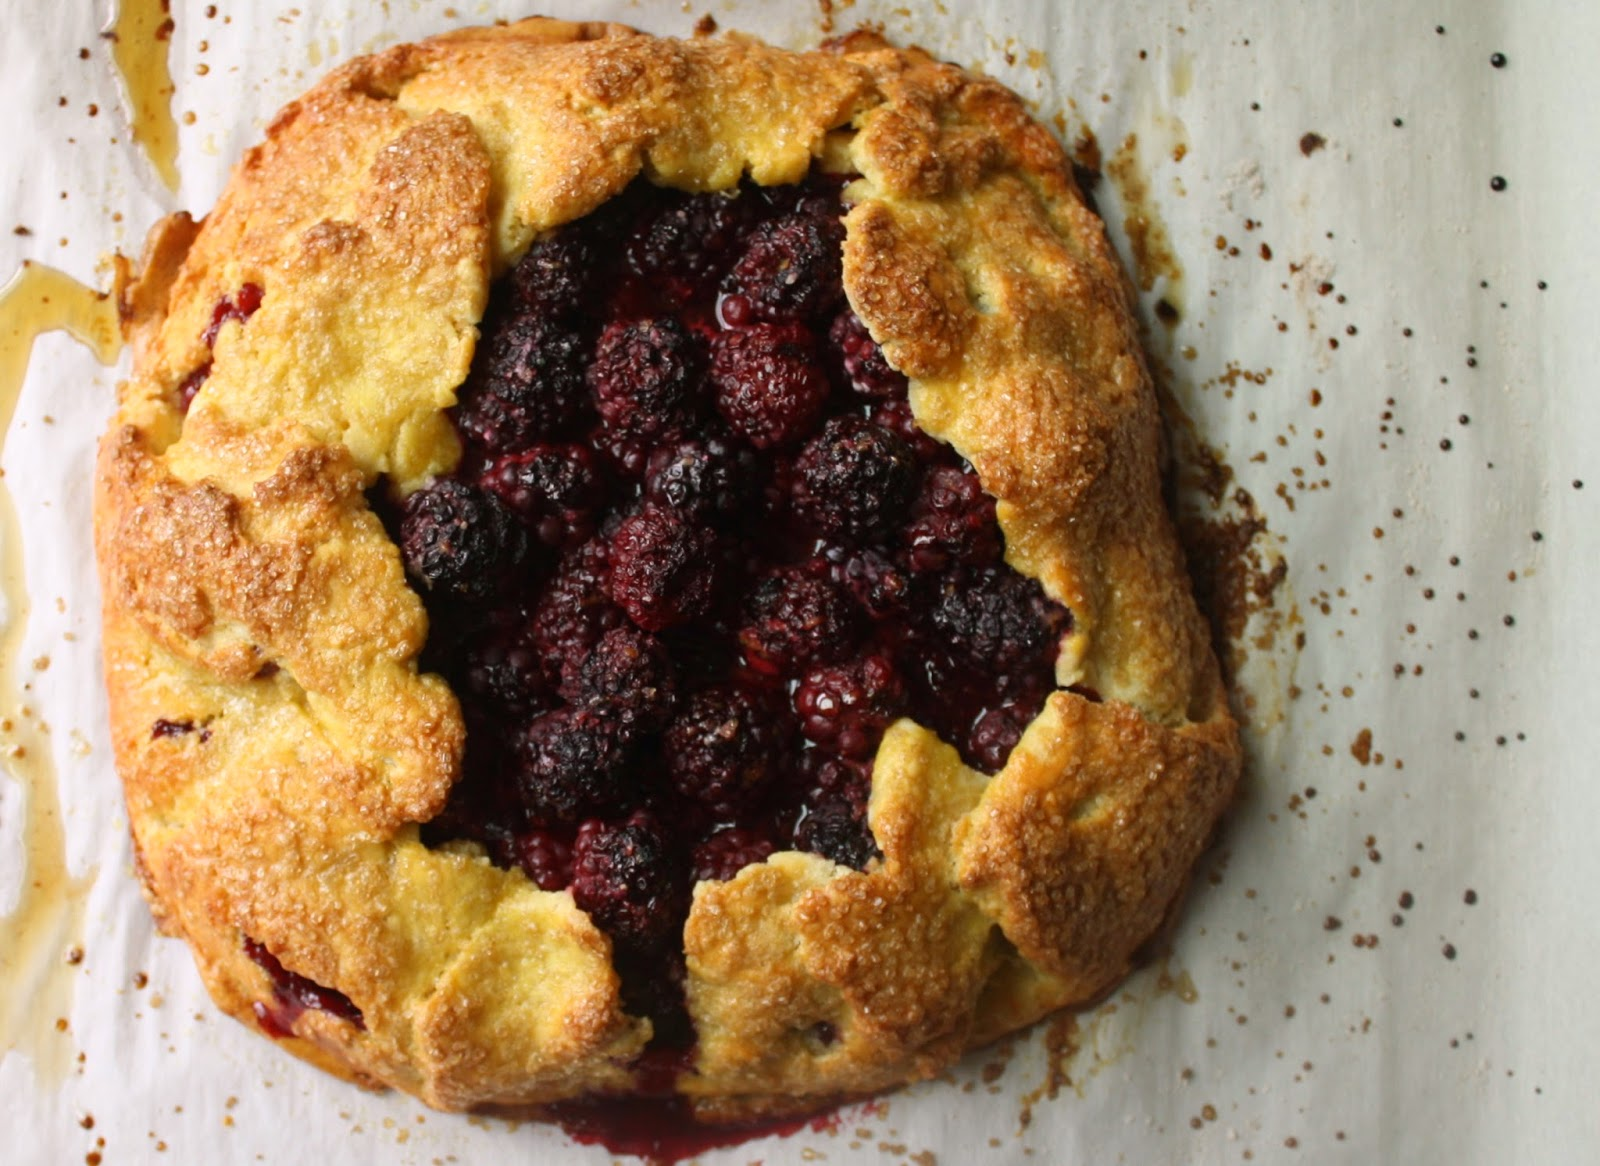 arielle clementine: Blackberry Crostata with Cornmeal Crust (Gluten ...